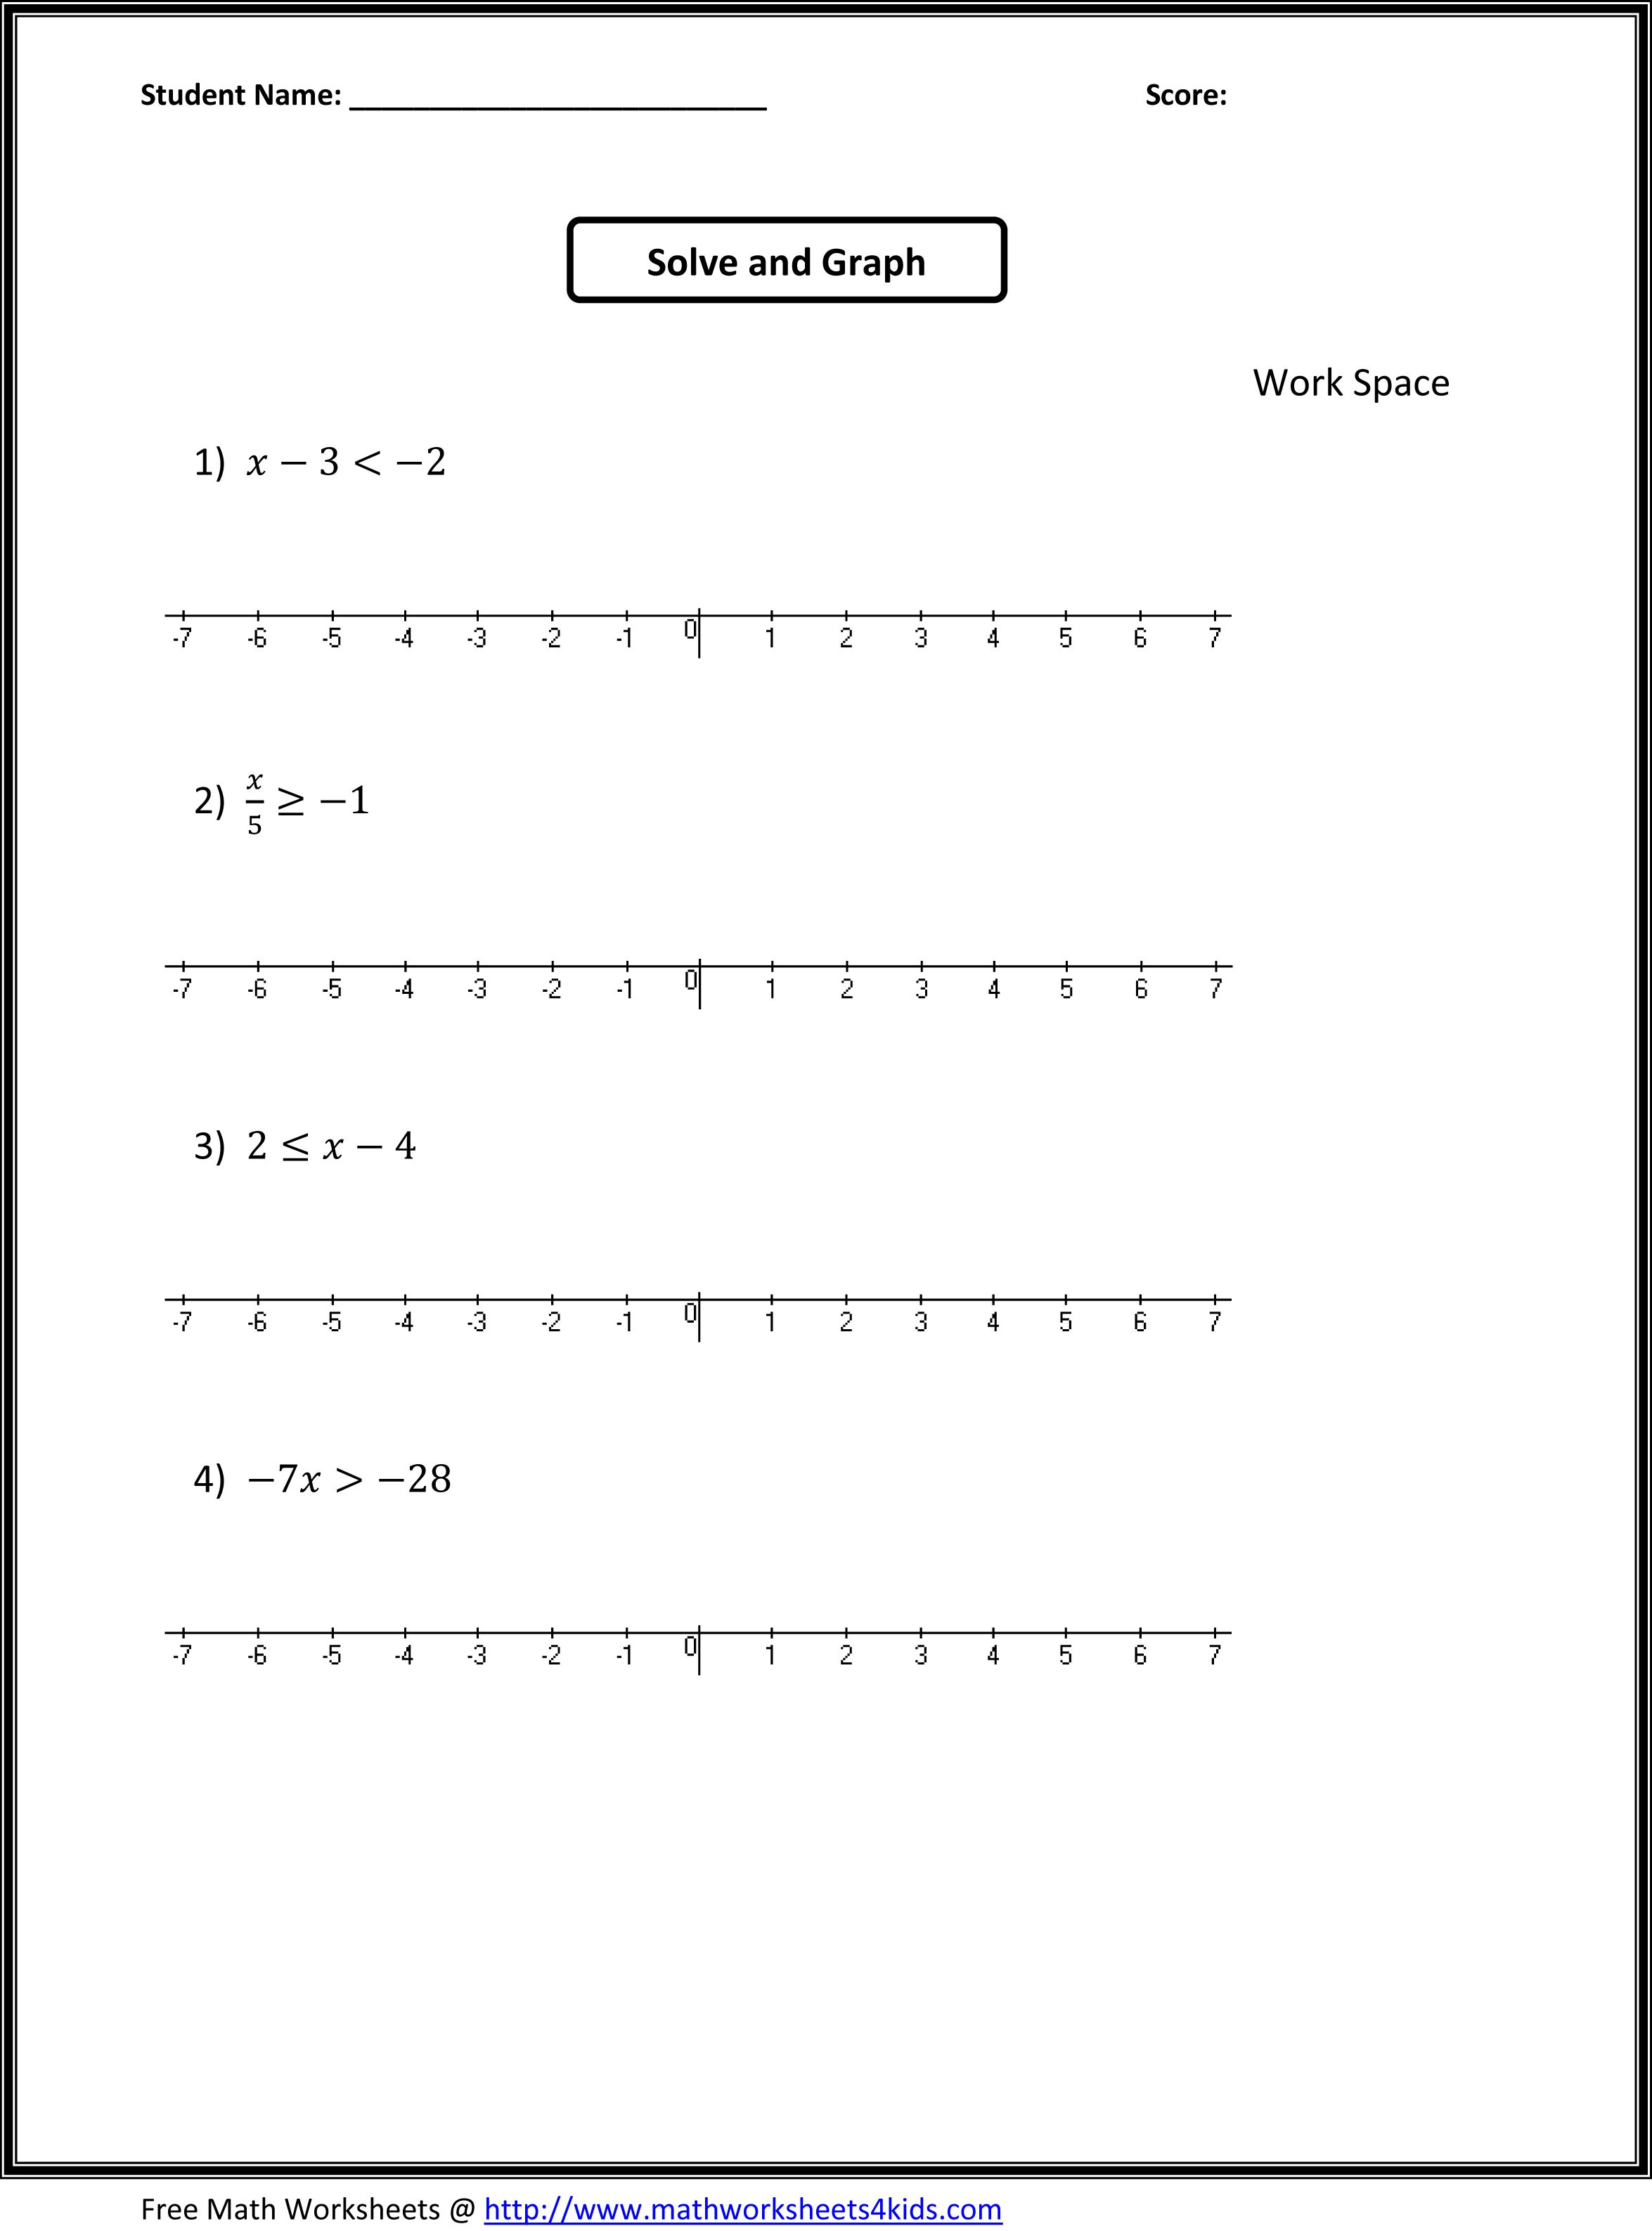 7th Grade Algebra Worksheets | 7th Grade Math Worksheets | Places to ...